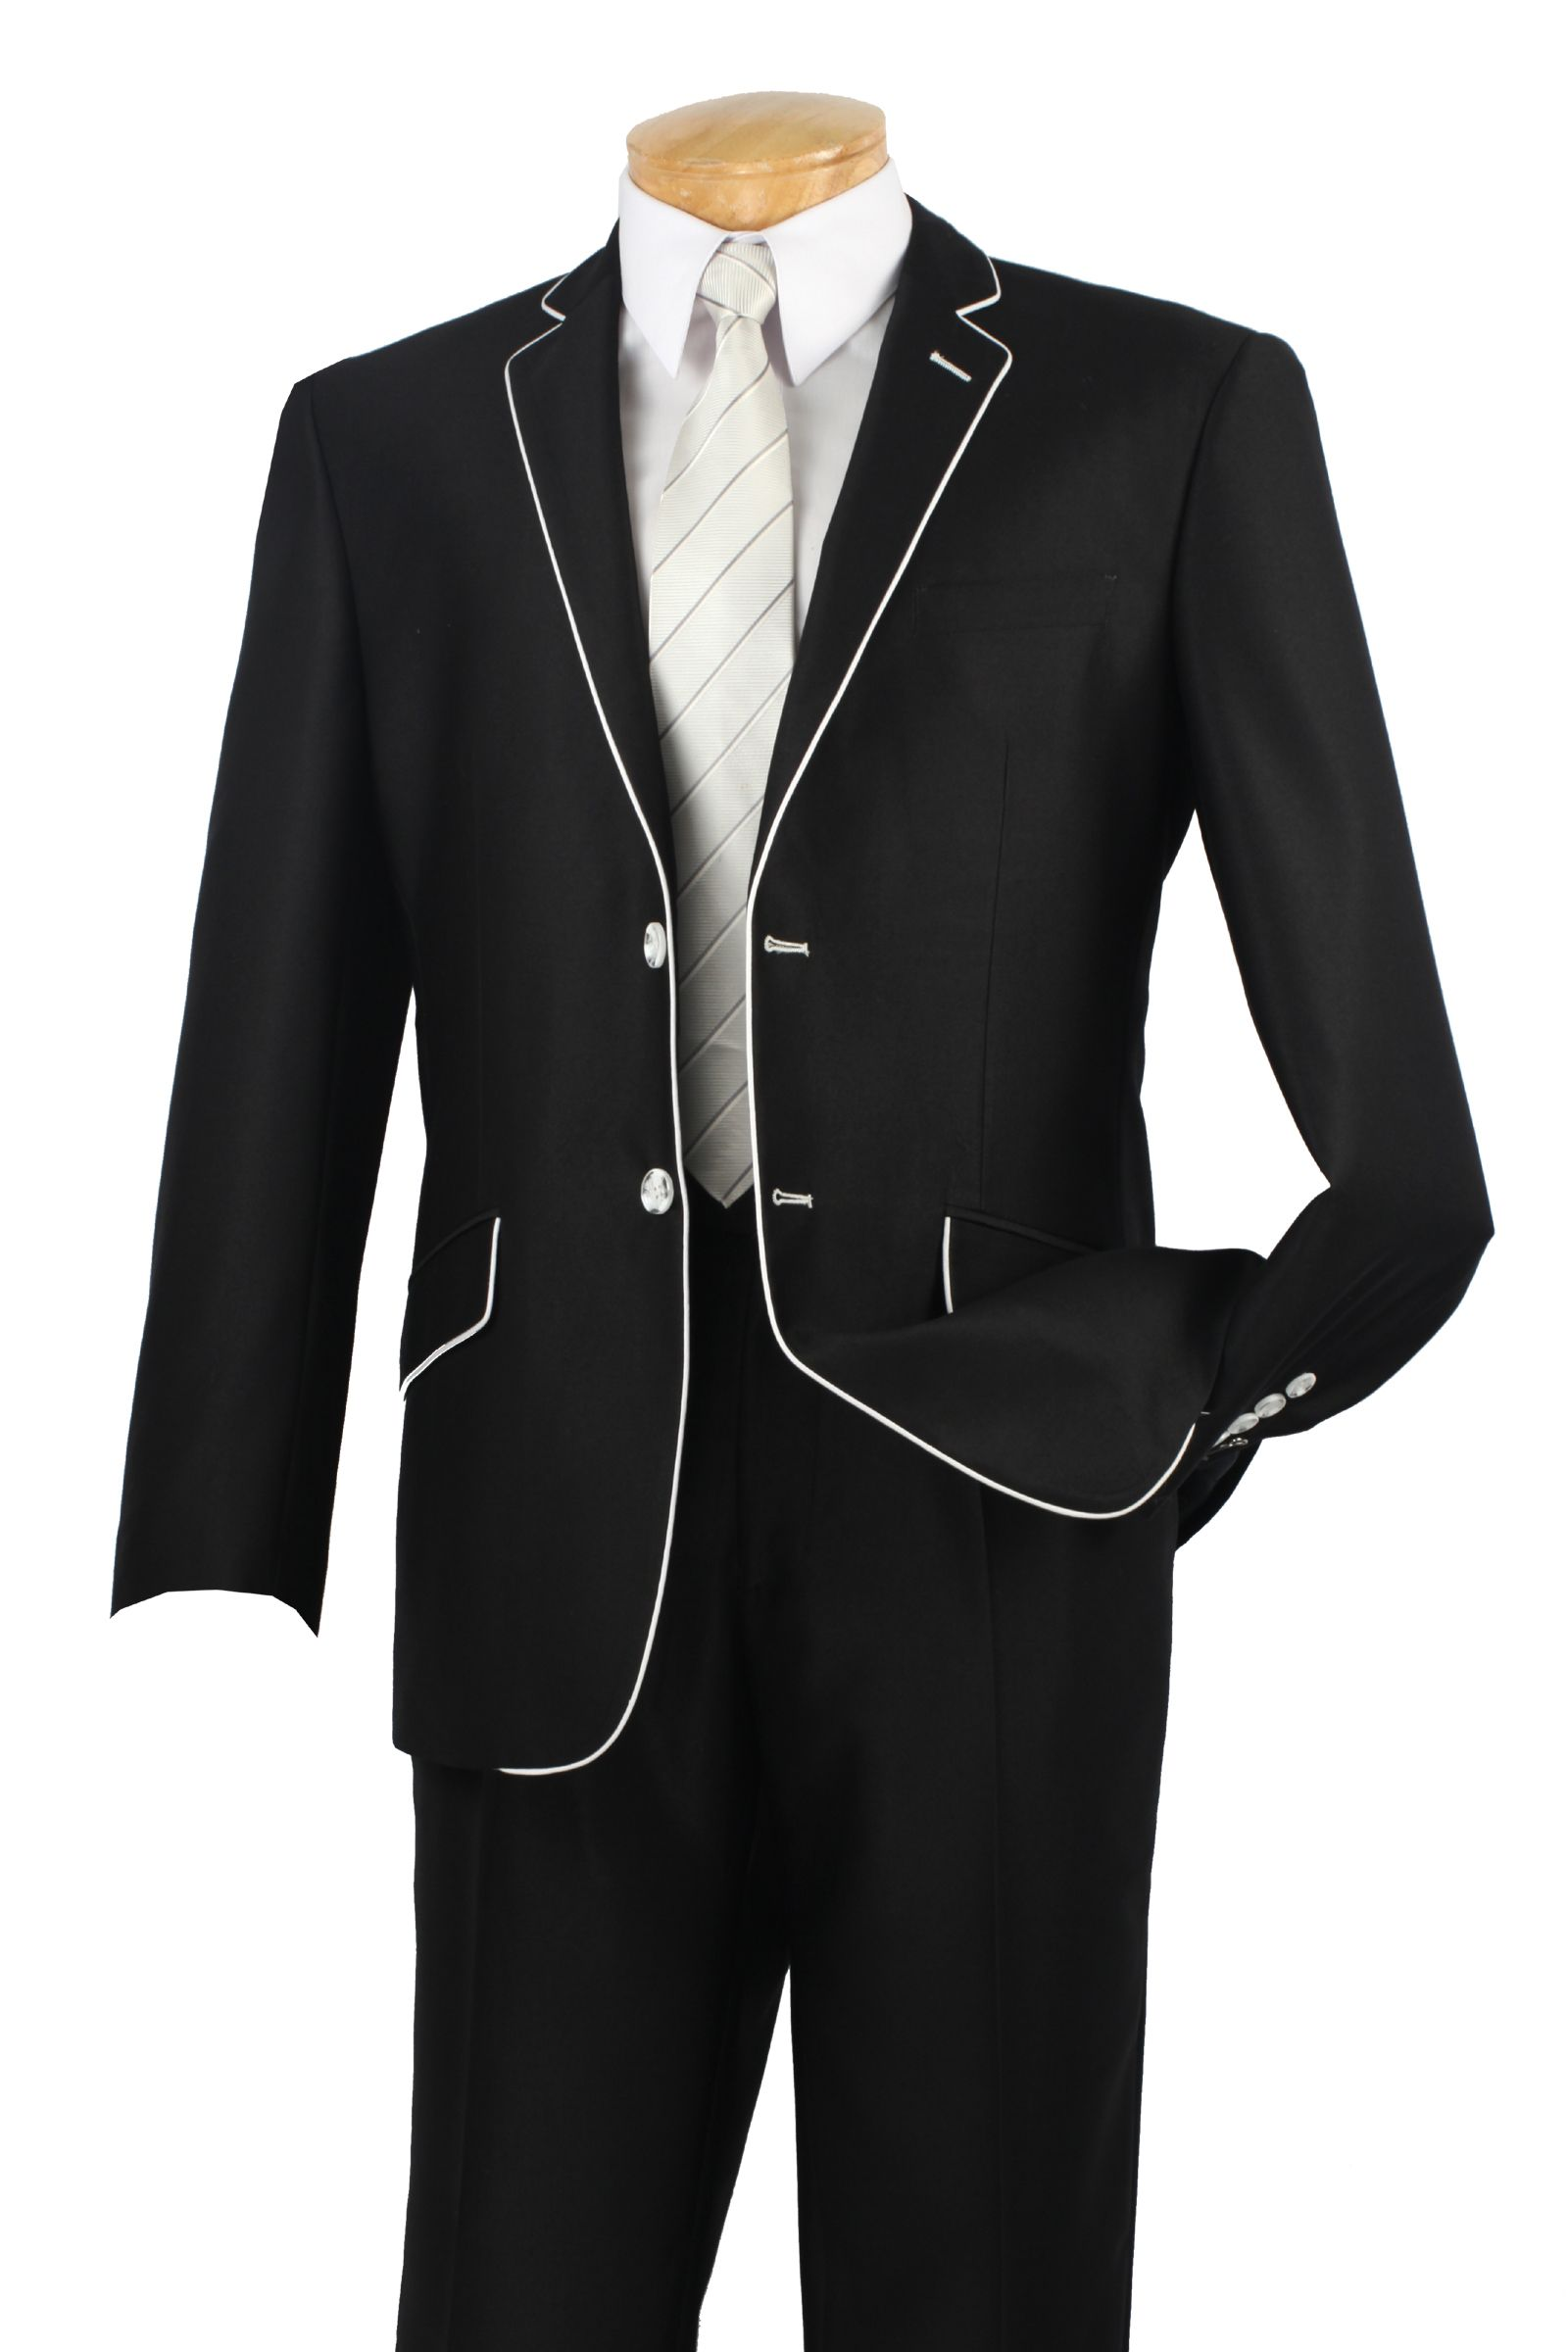 "Tailored blazer jacket in deep sea Notched lapels; long sleeves Black enamel button closure Satin faille piping and under-collar inset Fully lined Regular: Approx. 27"" from shoulder Petite: Approx. 25 5/8"" from shoulder Cotton/polyester/elastane."